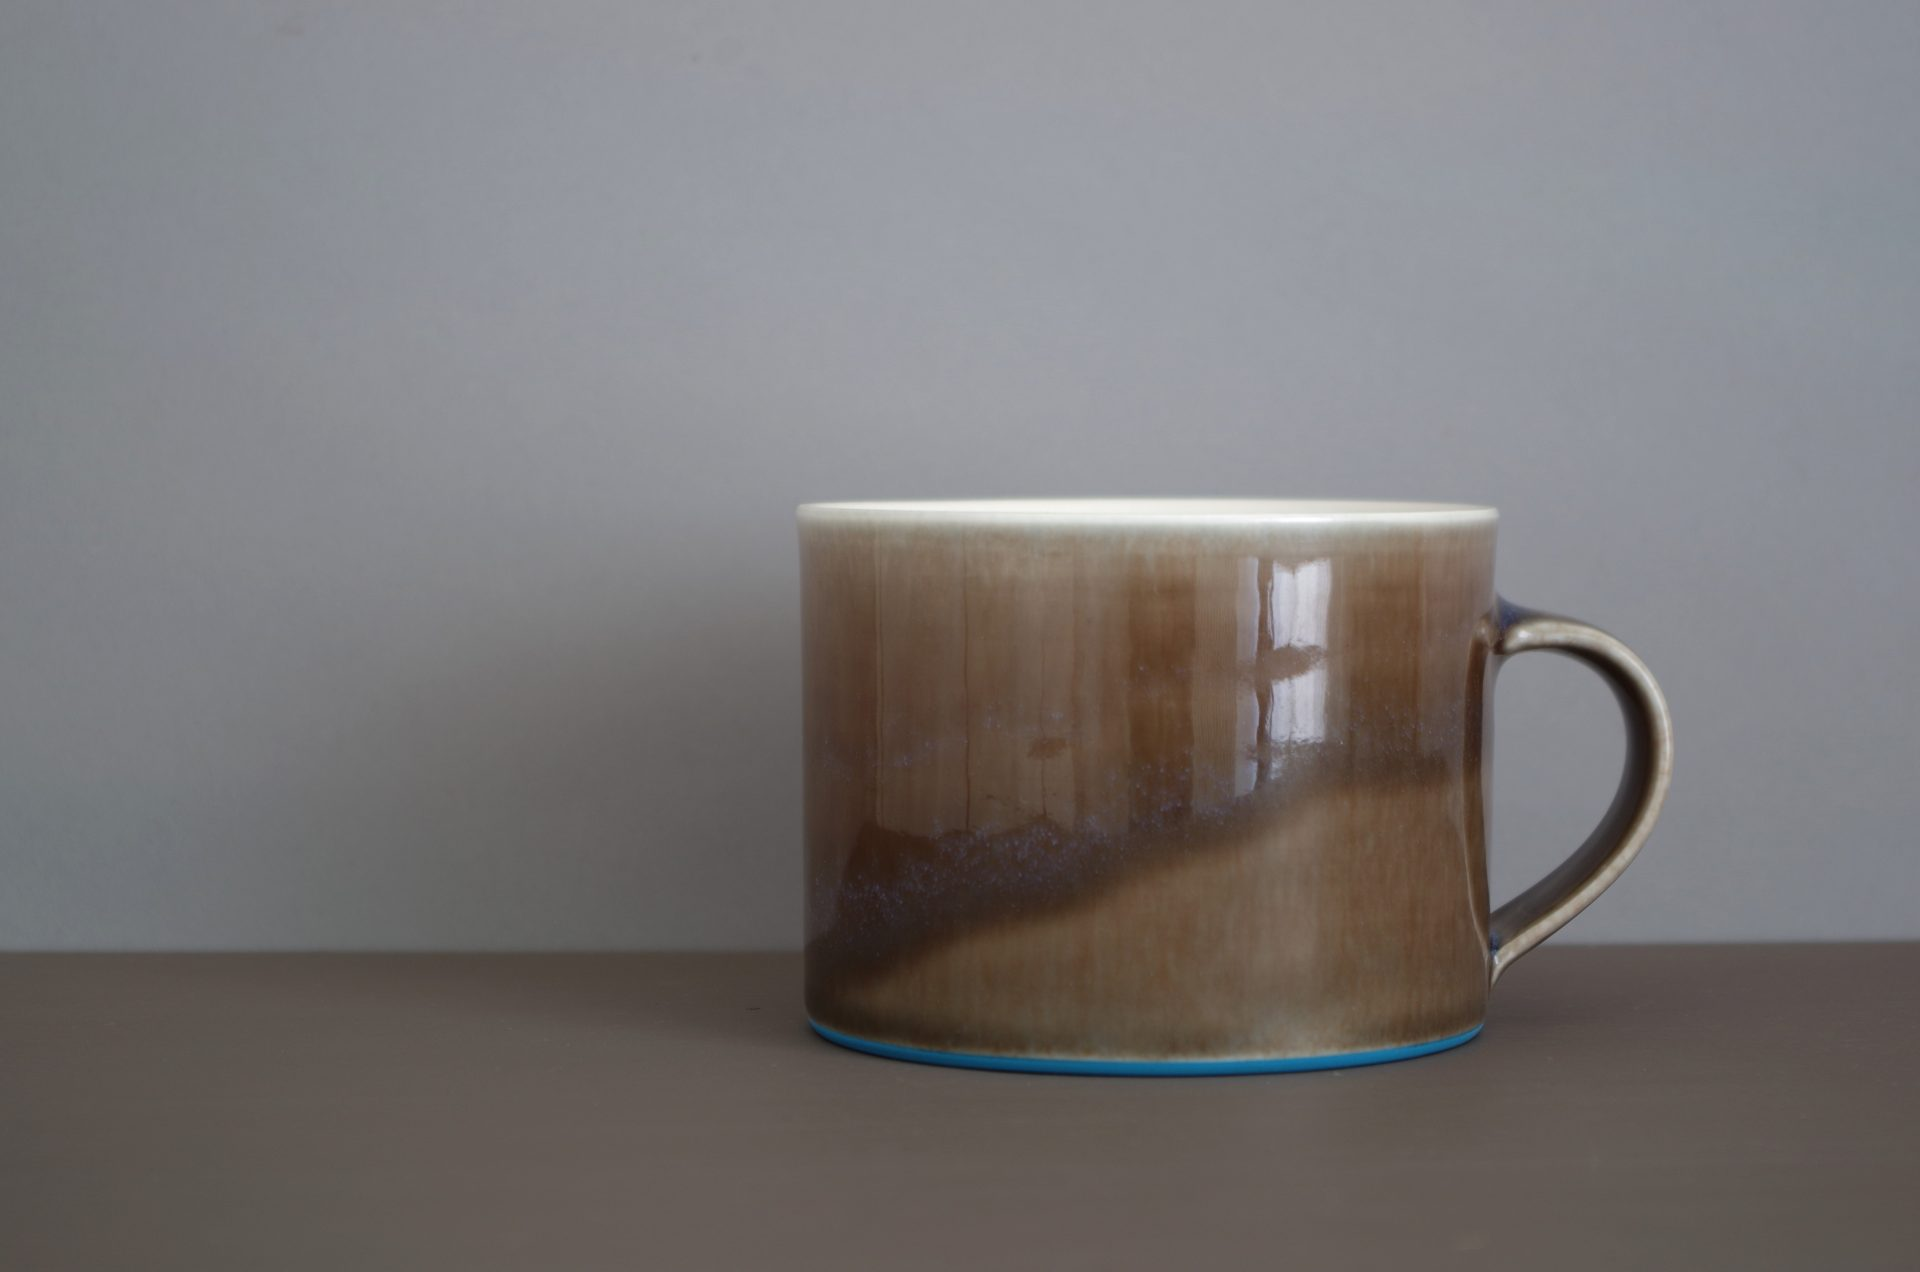 pond azure b'fast mug by James and Tilla Waters